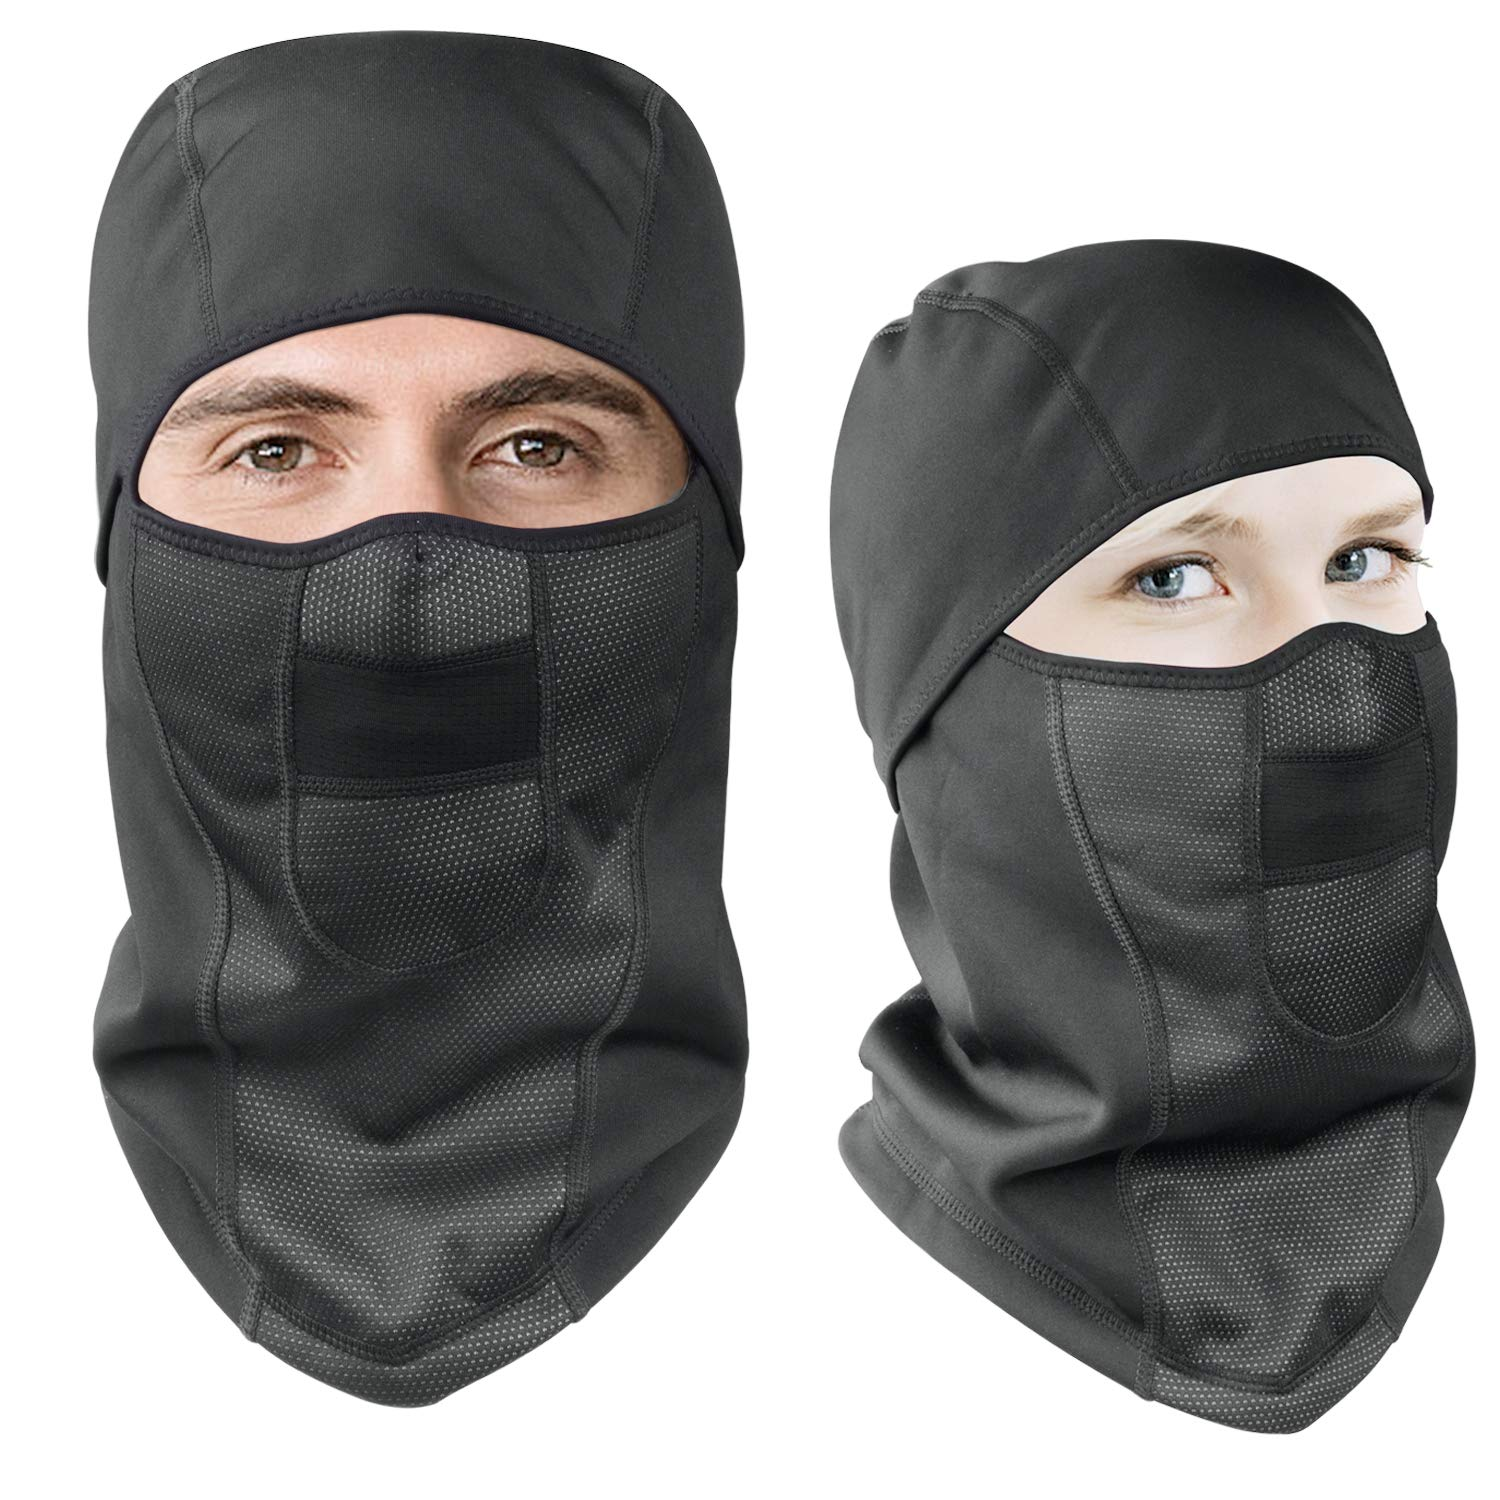 Windproof Ski Face Mask Motorcycle Balaclava Hood Fleece Mask for Camping Sport